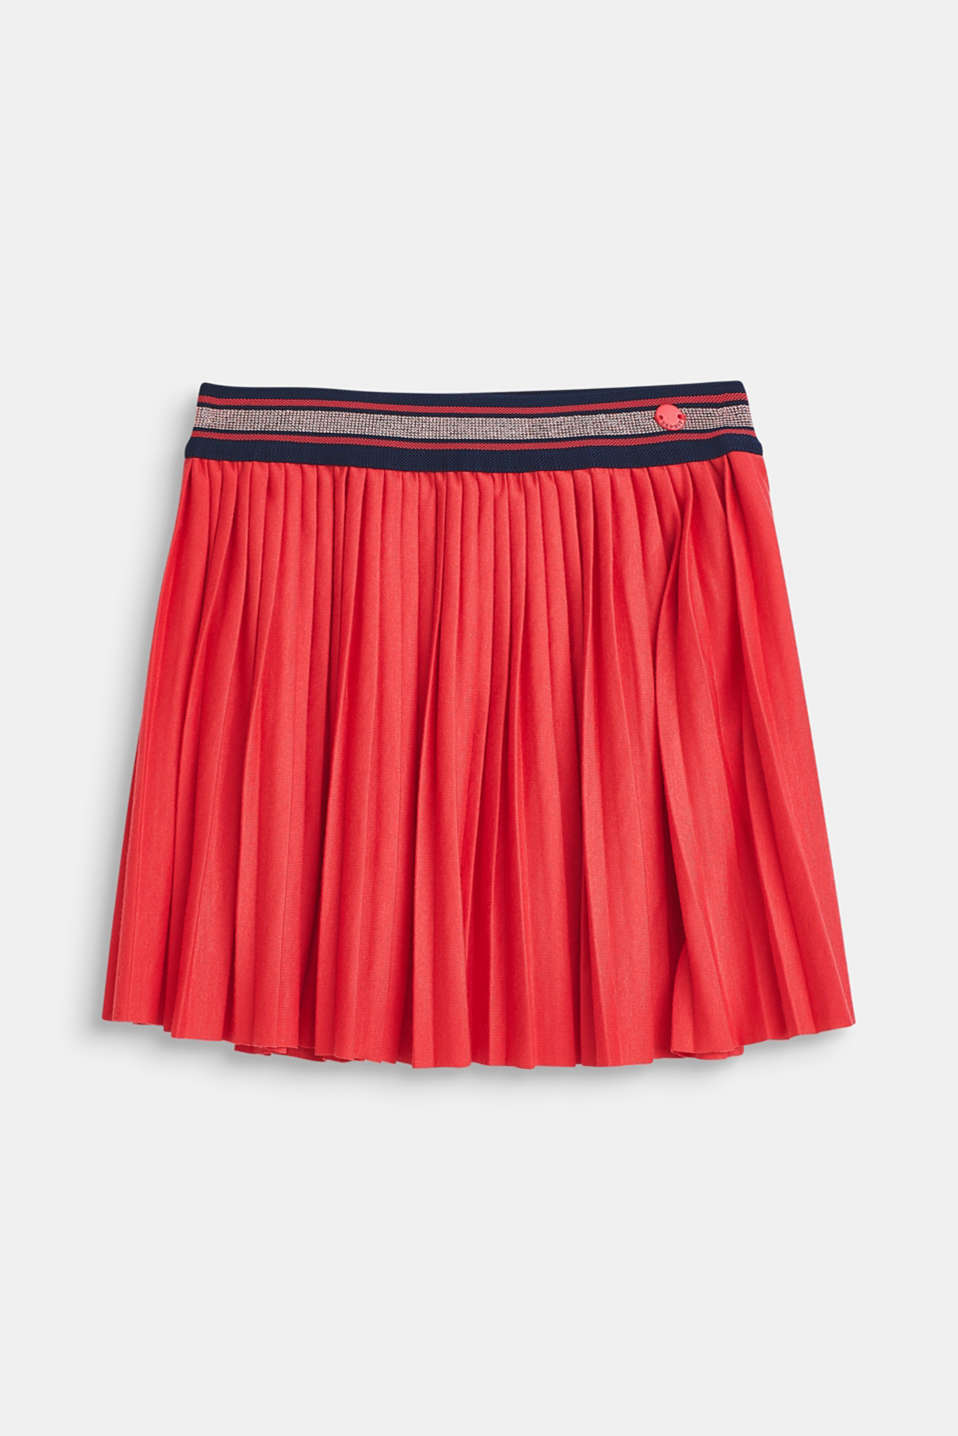 Esprit - Pleated skirt made of jersey with an elasticated waistband